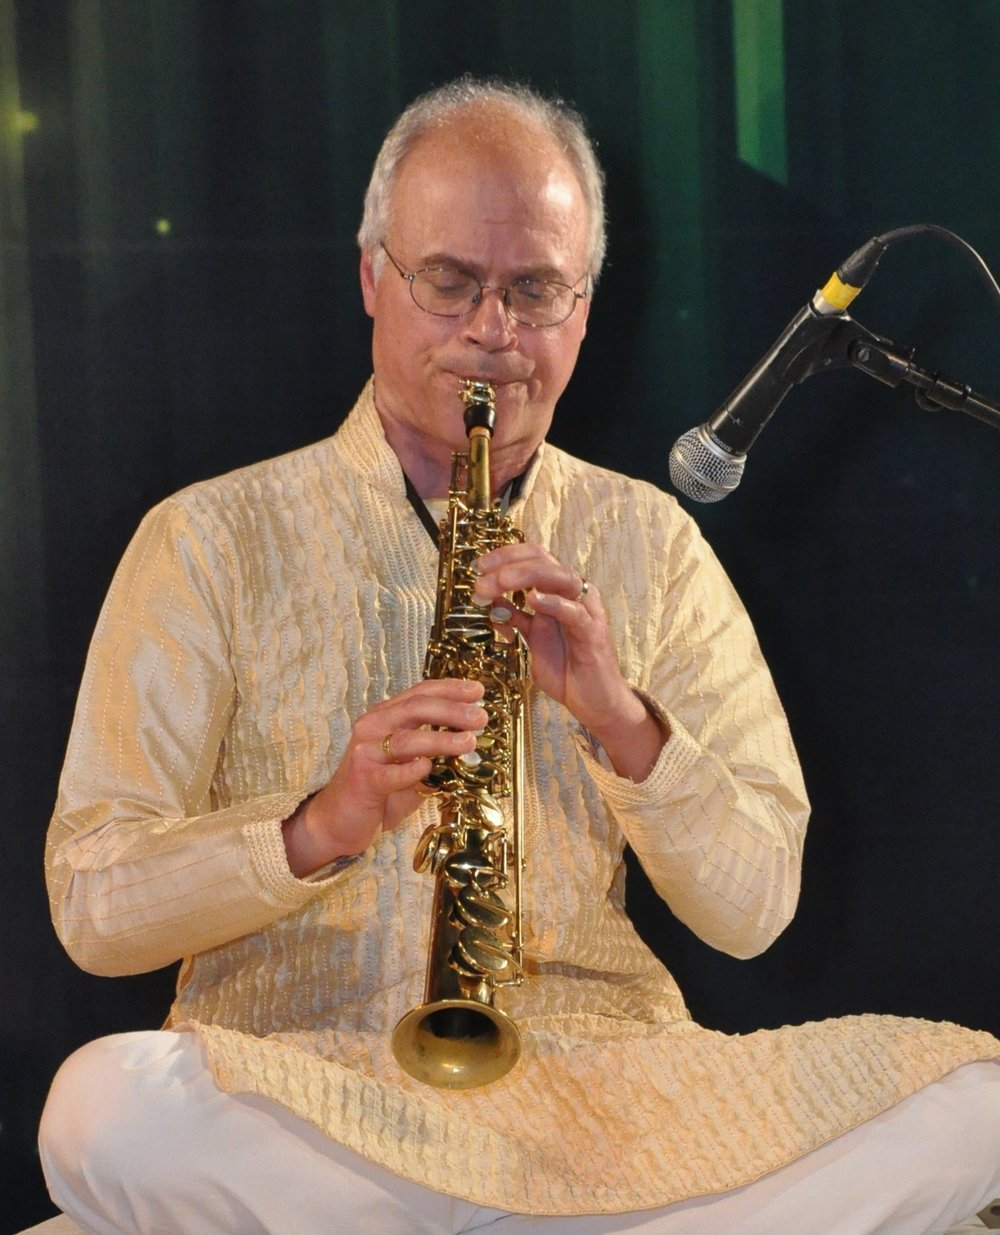 Indian - Jazz Celebration - Making Musical Magic in the Moment saxophonist Phil Scarff performs music of India along with local jazz band Cascade Jazz. Phil Scarff is a pioneer in the performance of North Indian classical music on soprano saxophone who exquisitely captures the music's subtlety and depth. As a master jazz saxophonist; he leads the acclaimed world-jazz ensembles Natraj and the Lewis Porter-Phil Scarff Group. He performs and records with creative jazz groups including Aardvark Jazz Orchestra, Jazz Composers Alliance Orchestra, and Filmprov.